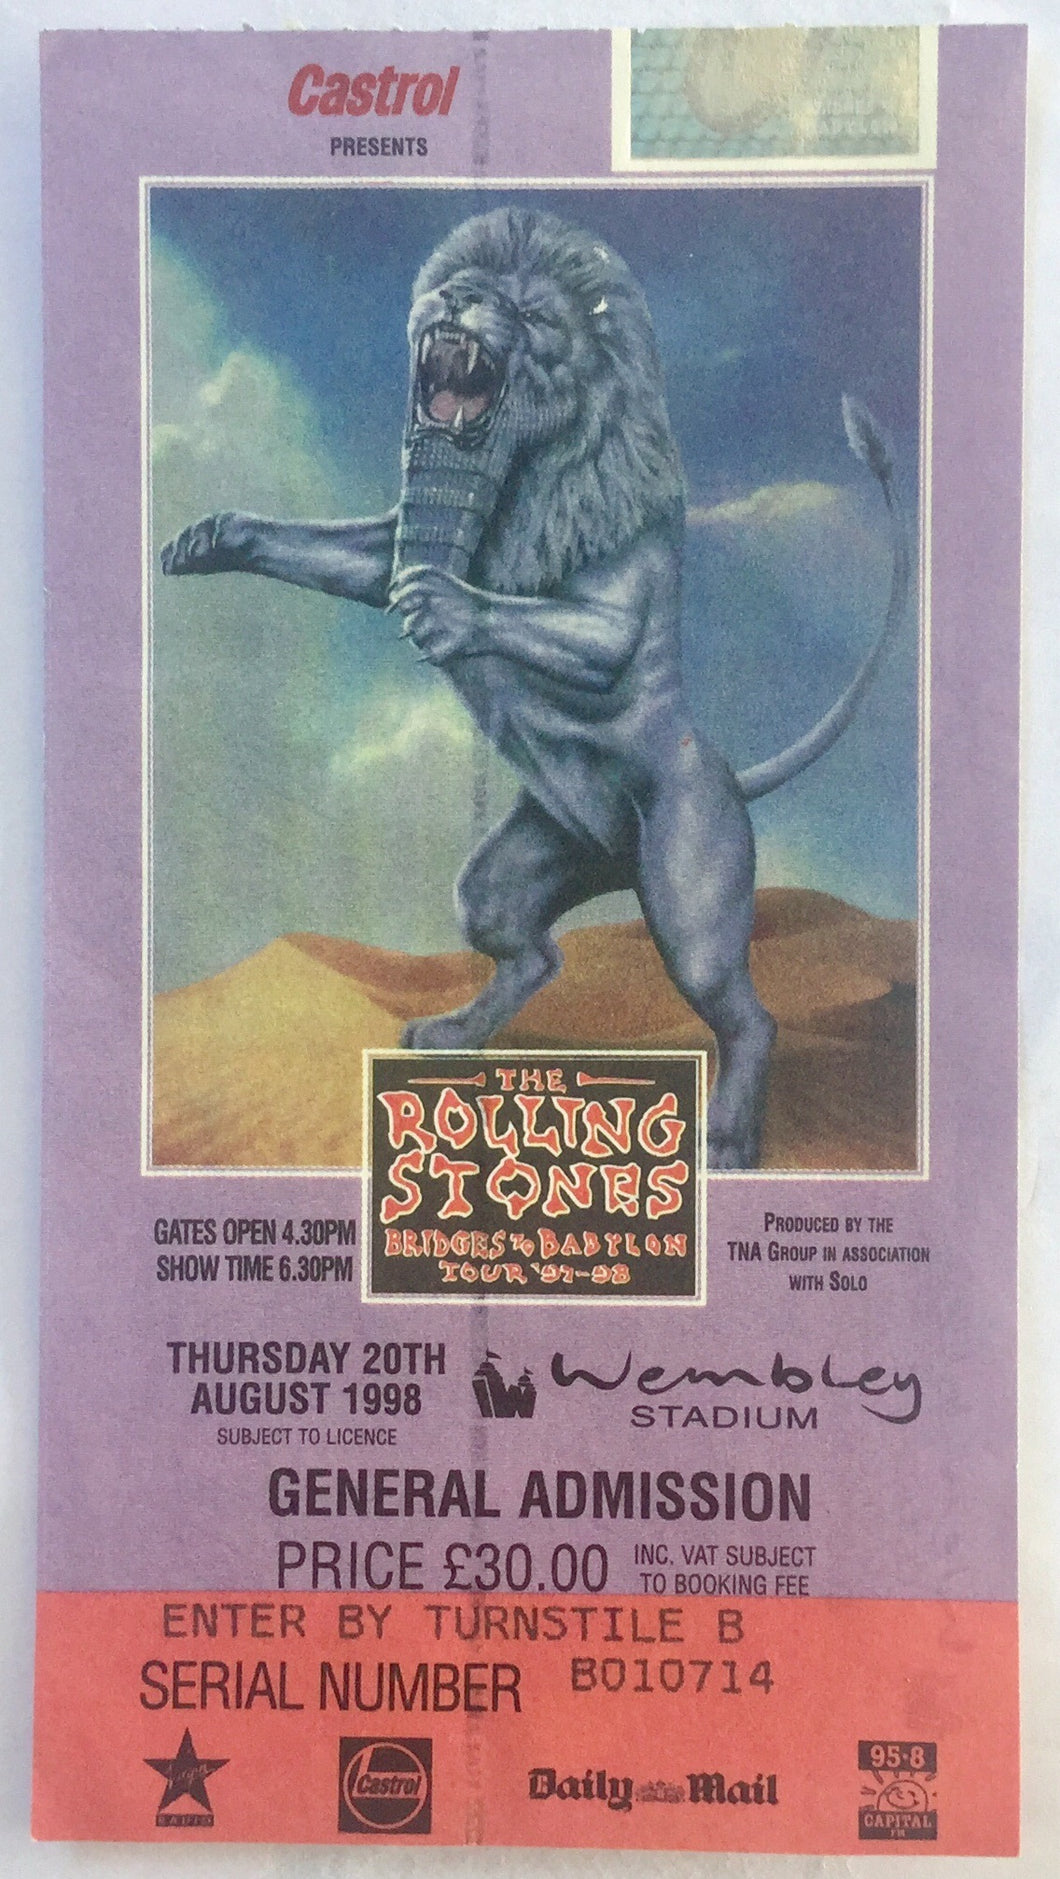 Rolling Stones Original Used Concert Ticket Wembley Stadium London 20th Aug 1998